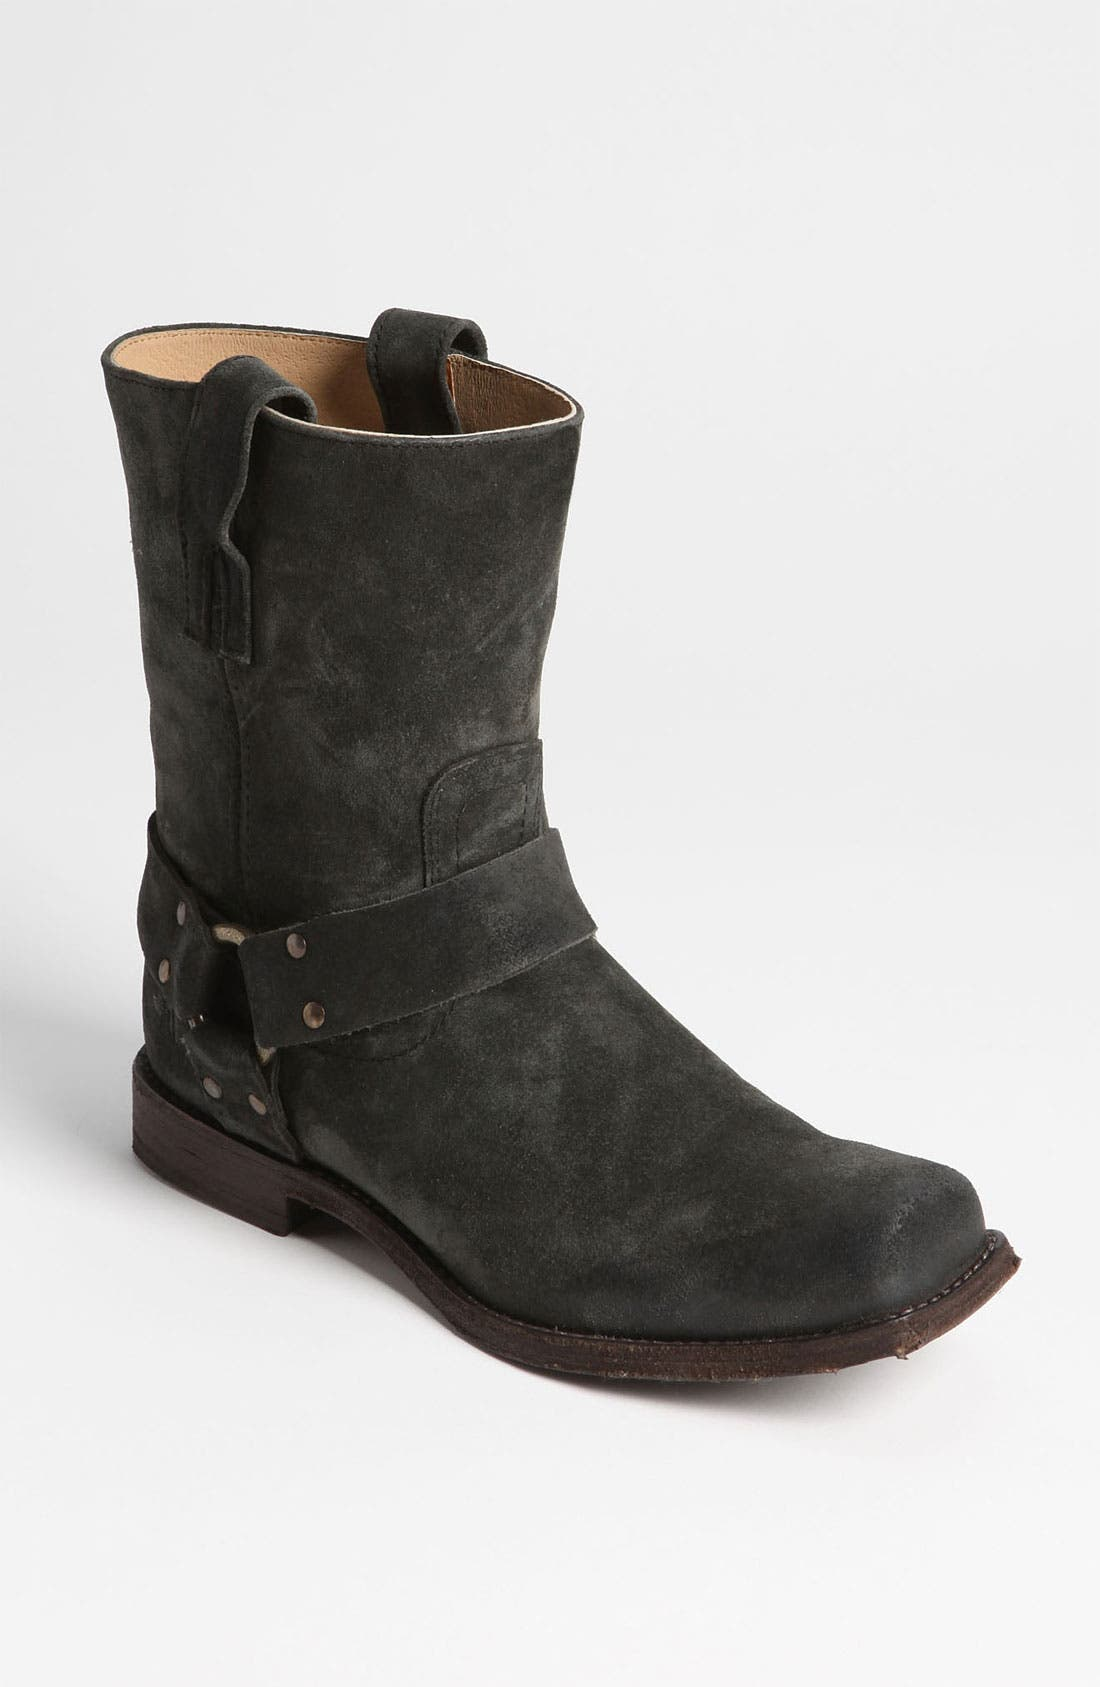 Main Image - Frye 'Smith' Harness Boot